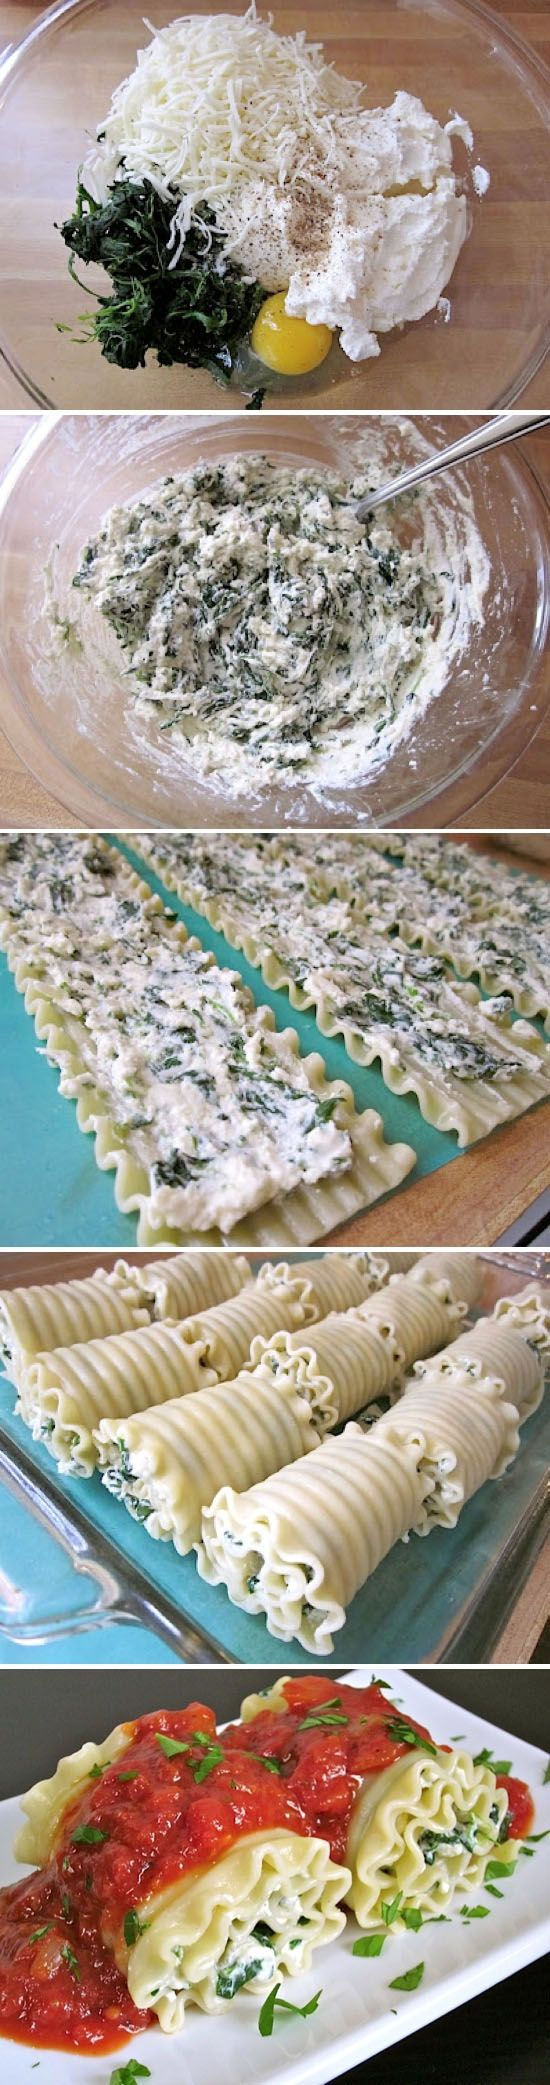 Spinach Lasagna Roll Ups- Easy, delicious weeknight meal